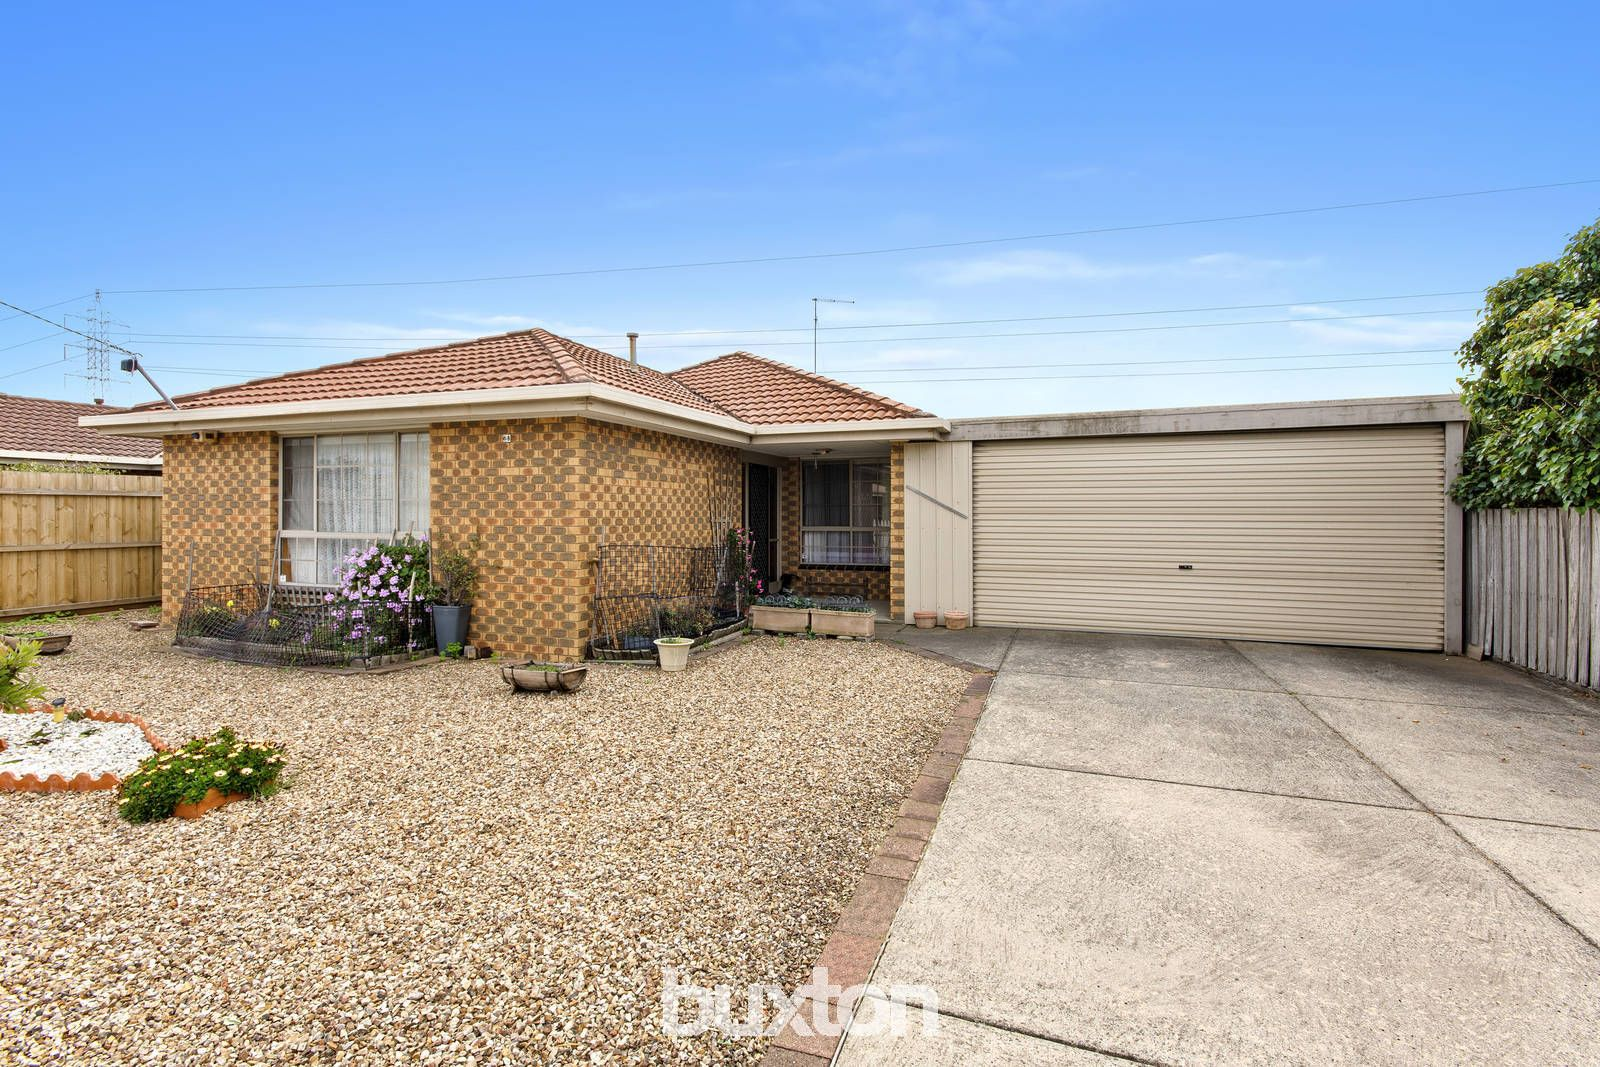 68 Greenville Drive, Grovedale VIC 3216, Image 0